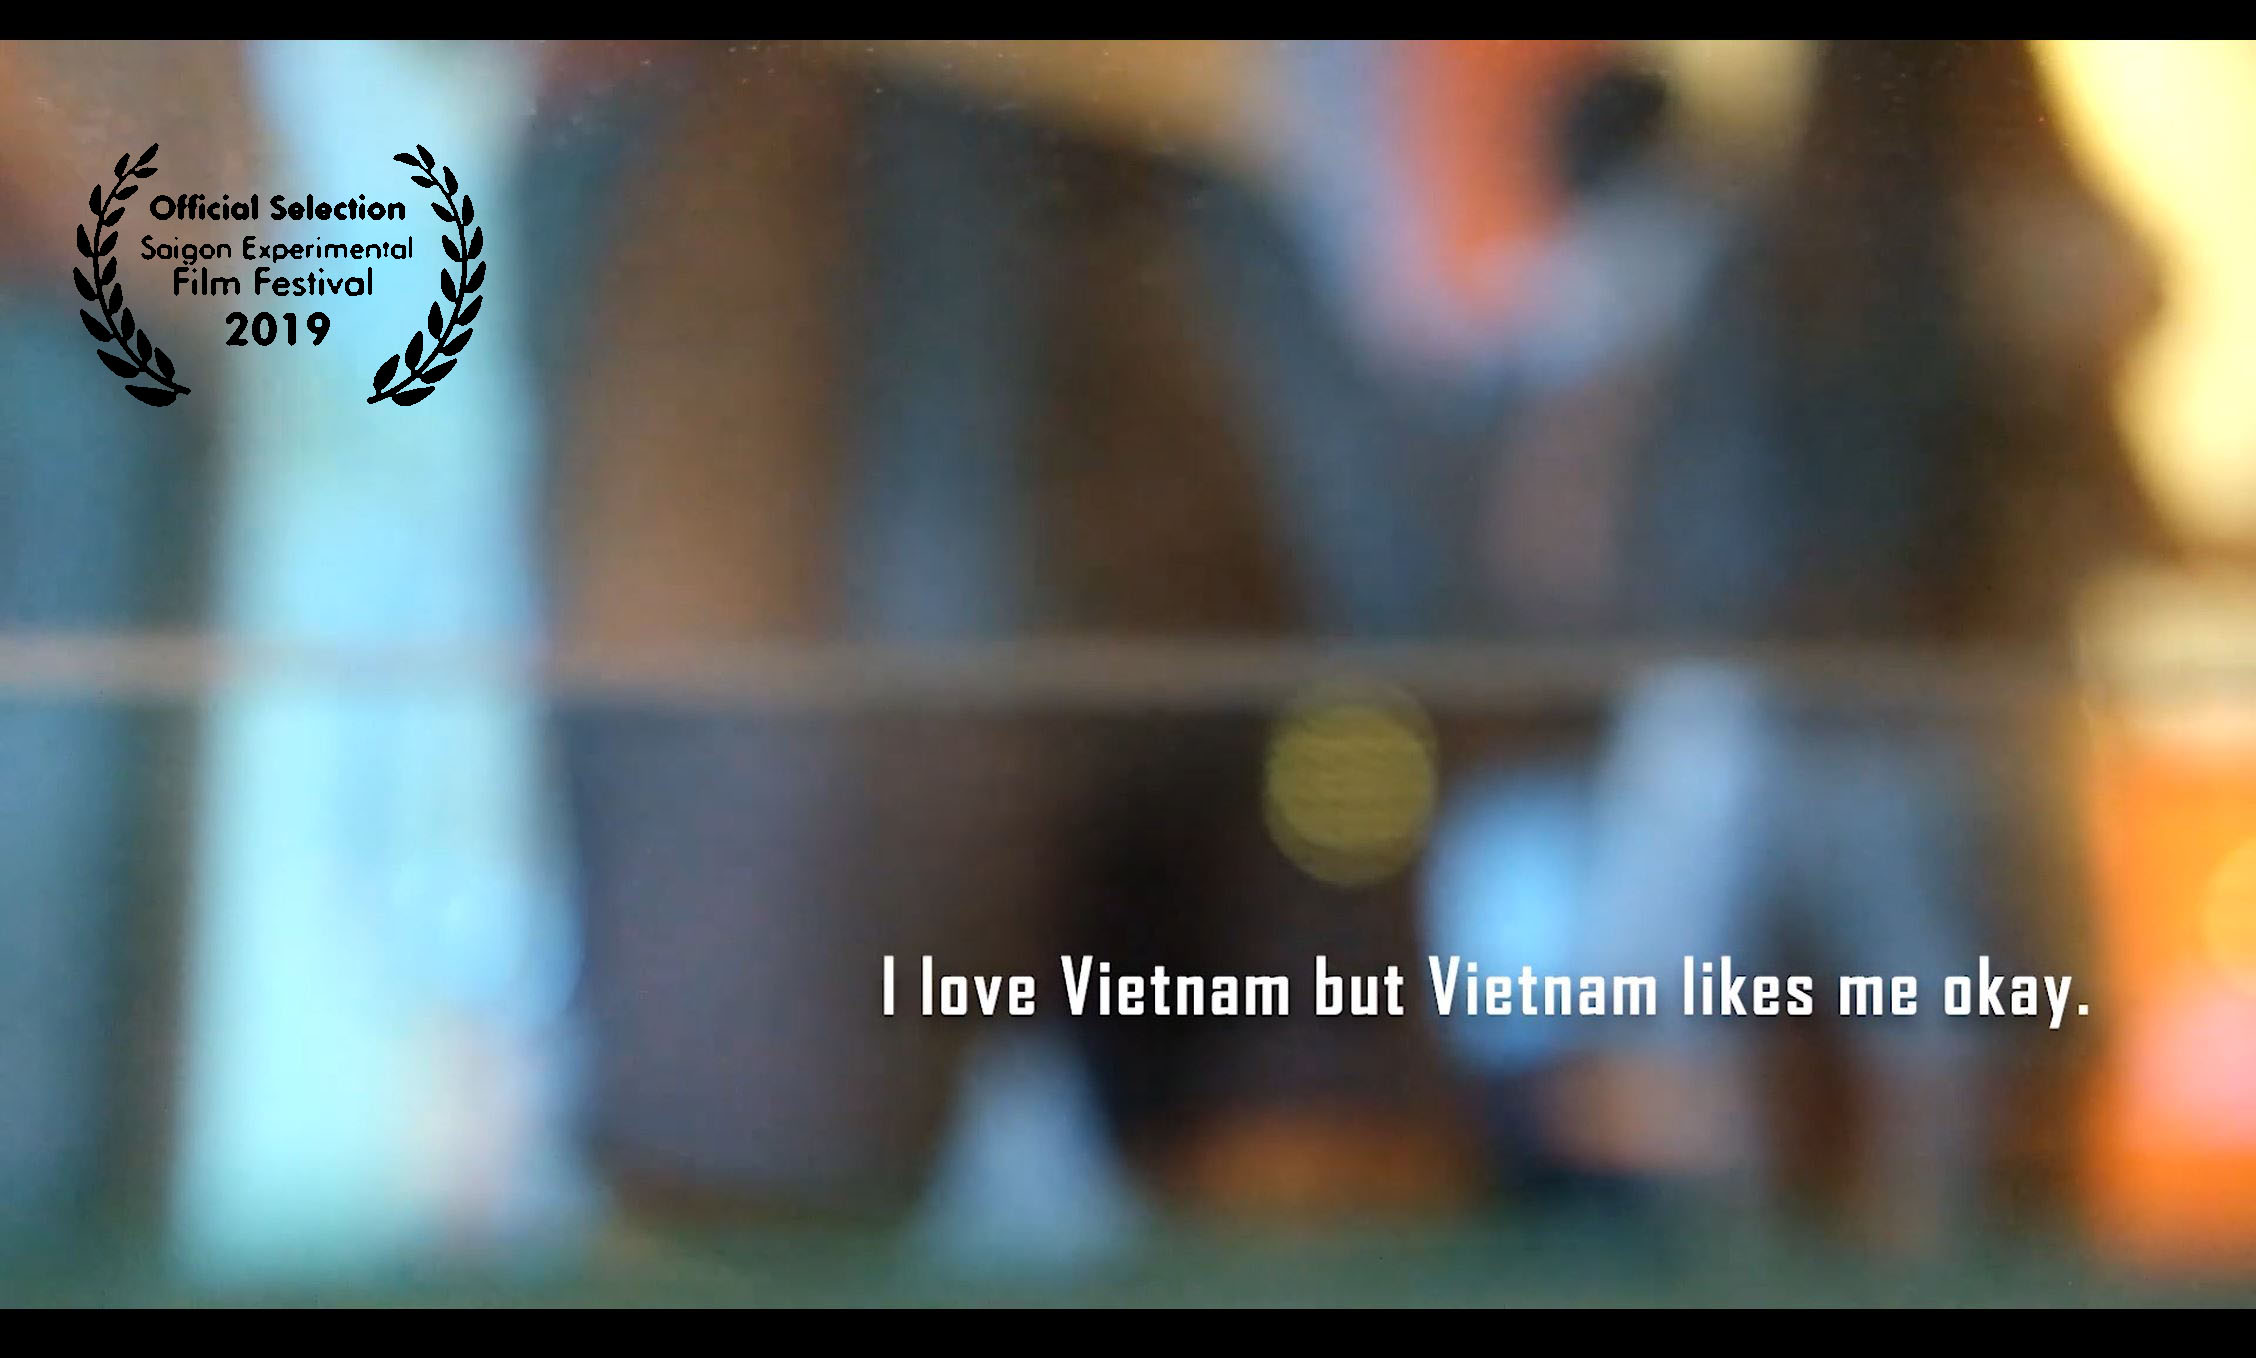 m.1 I love Vietnam but Vietnam likes me okay.